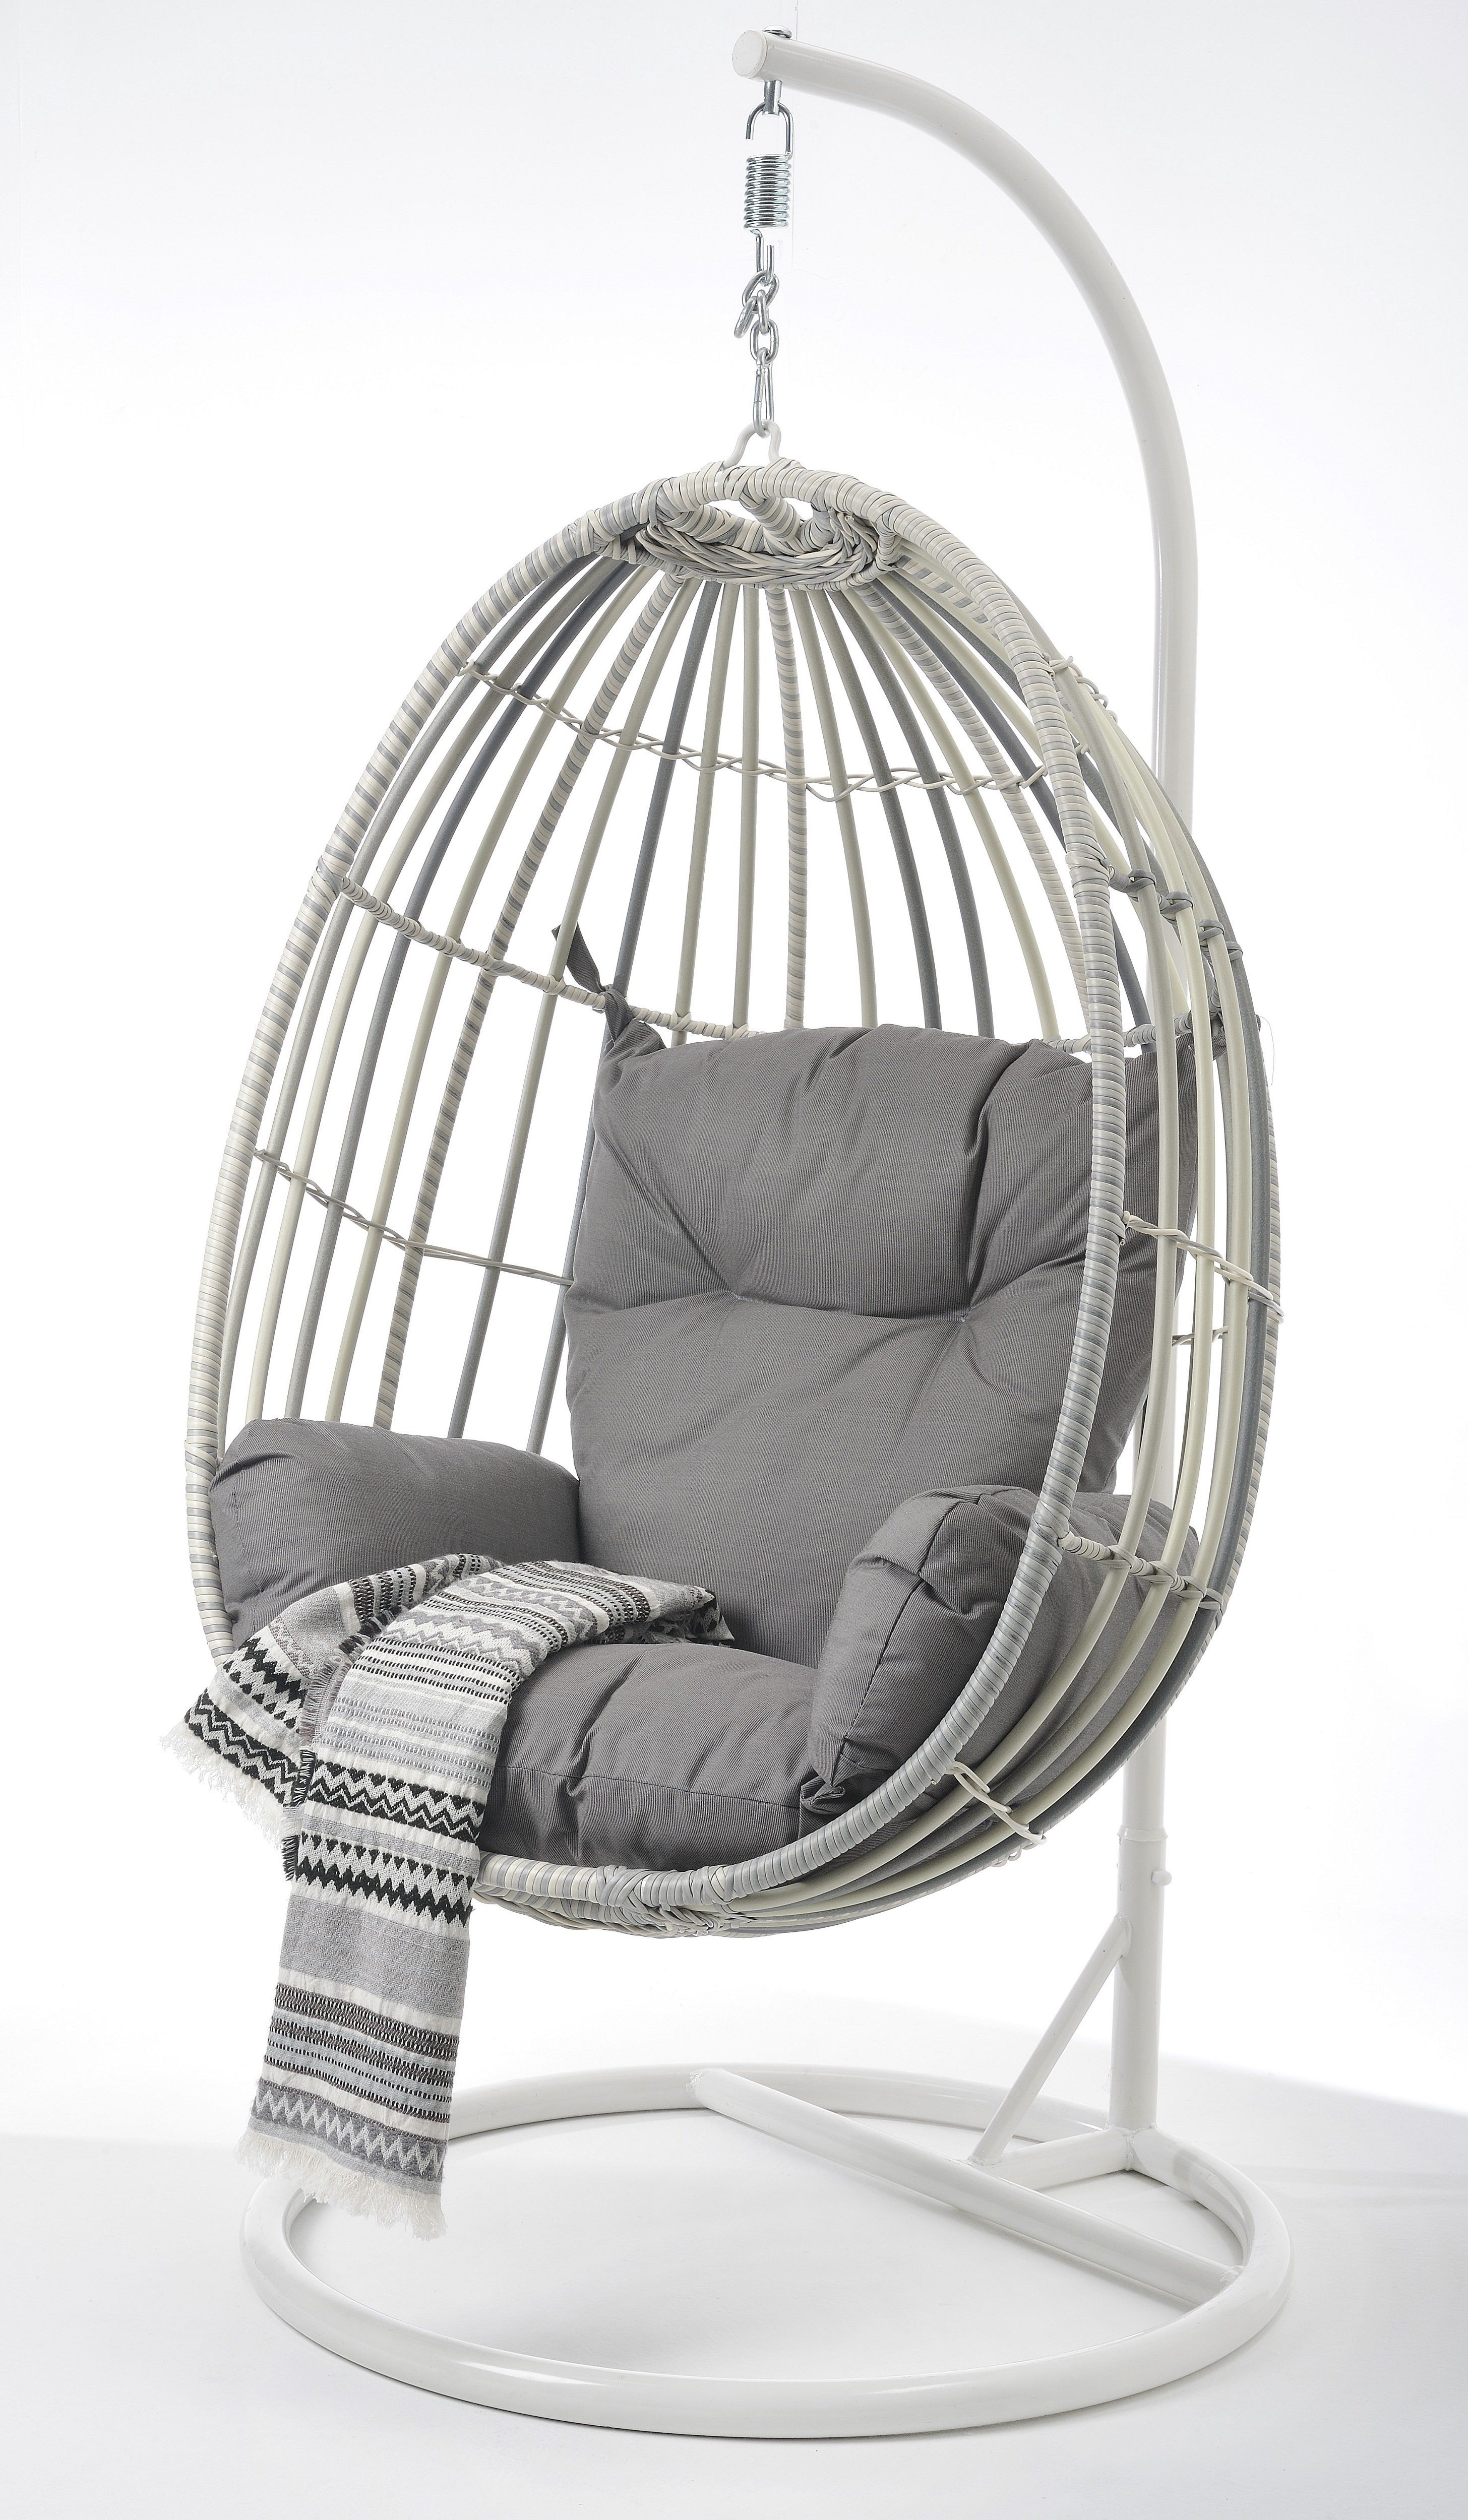 New Moon Wicker Outdoor Hanging Egg Chair White